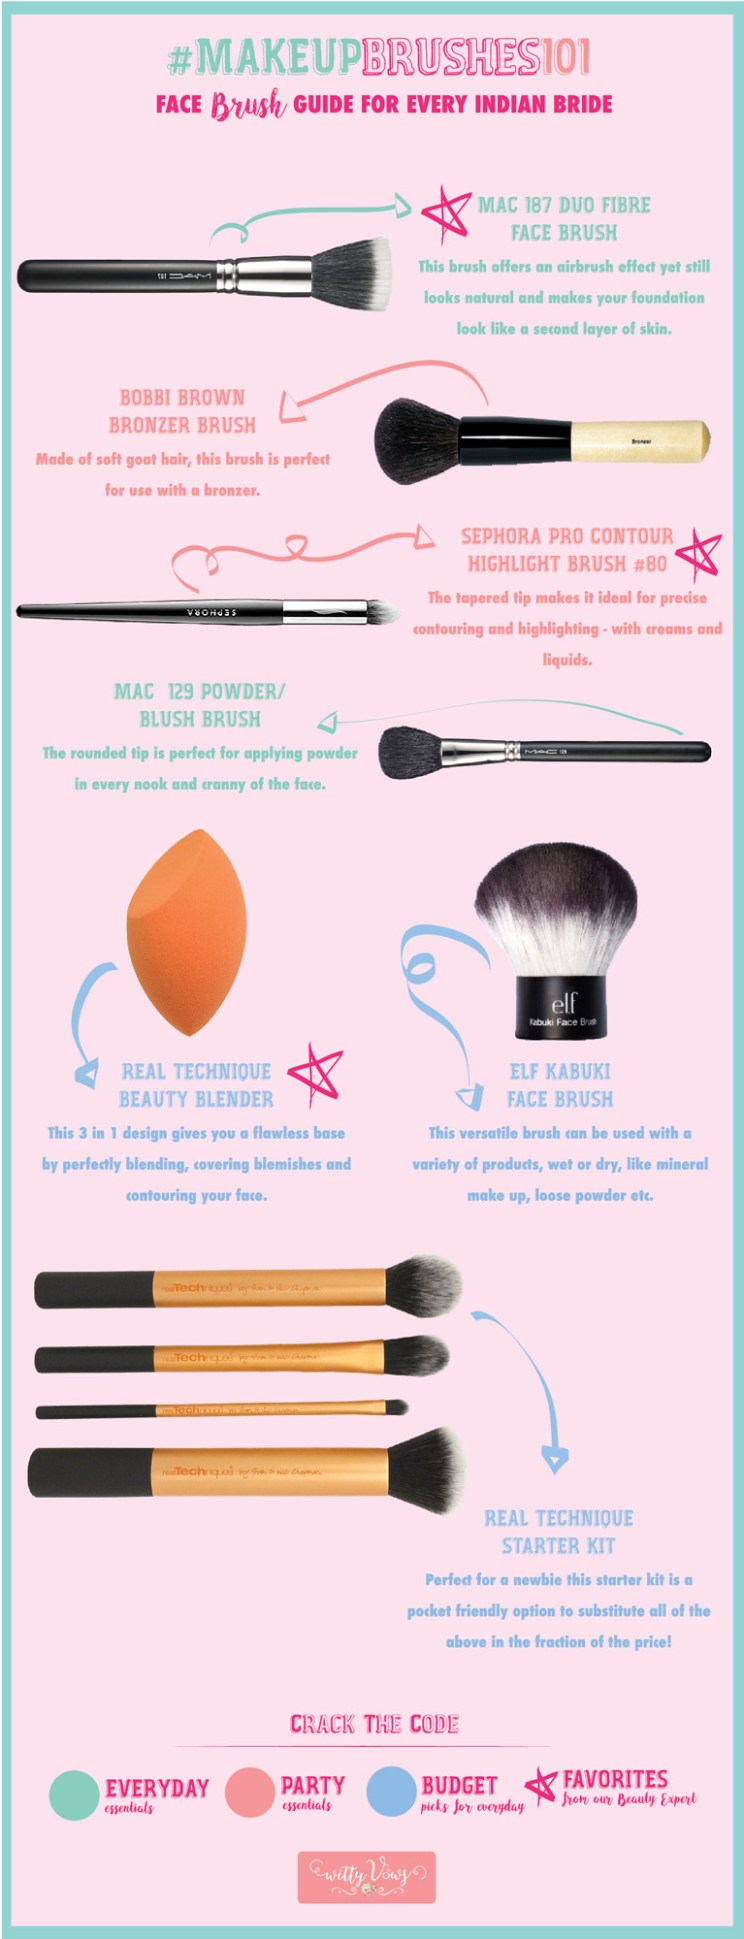 Indian Bridal Makeup Guide Face Brush Essentials Where To Buy